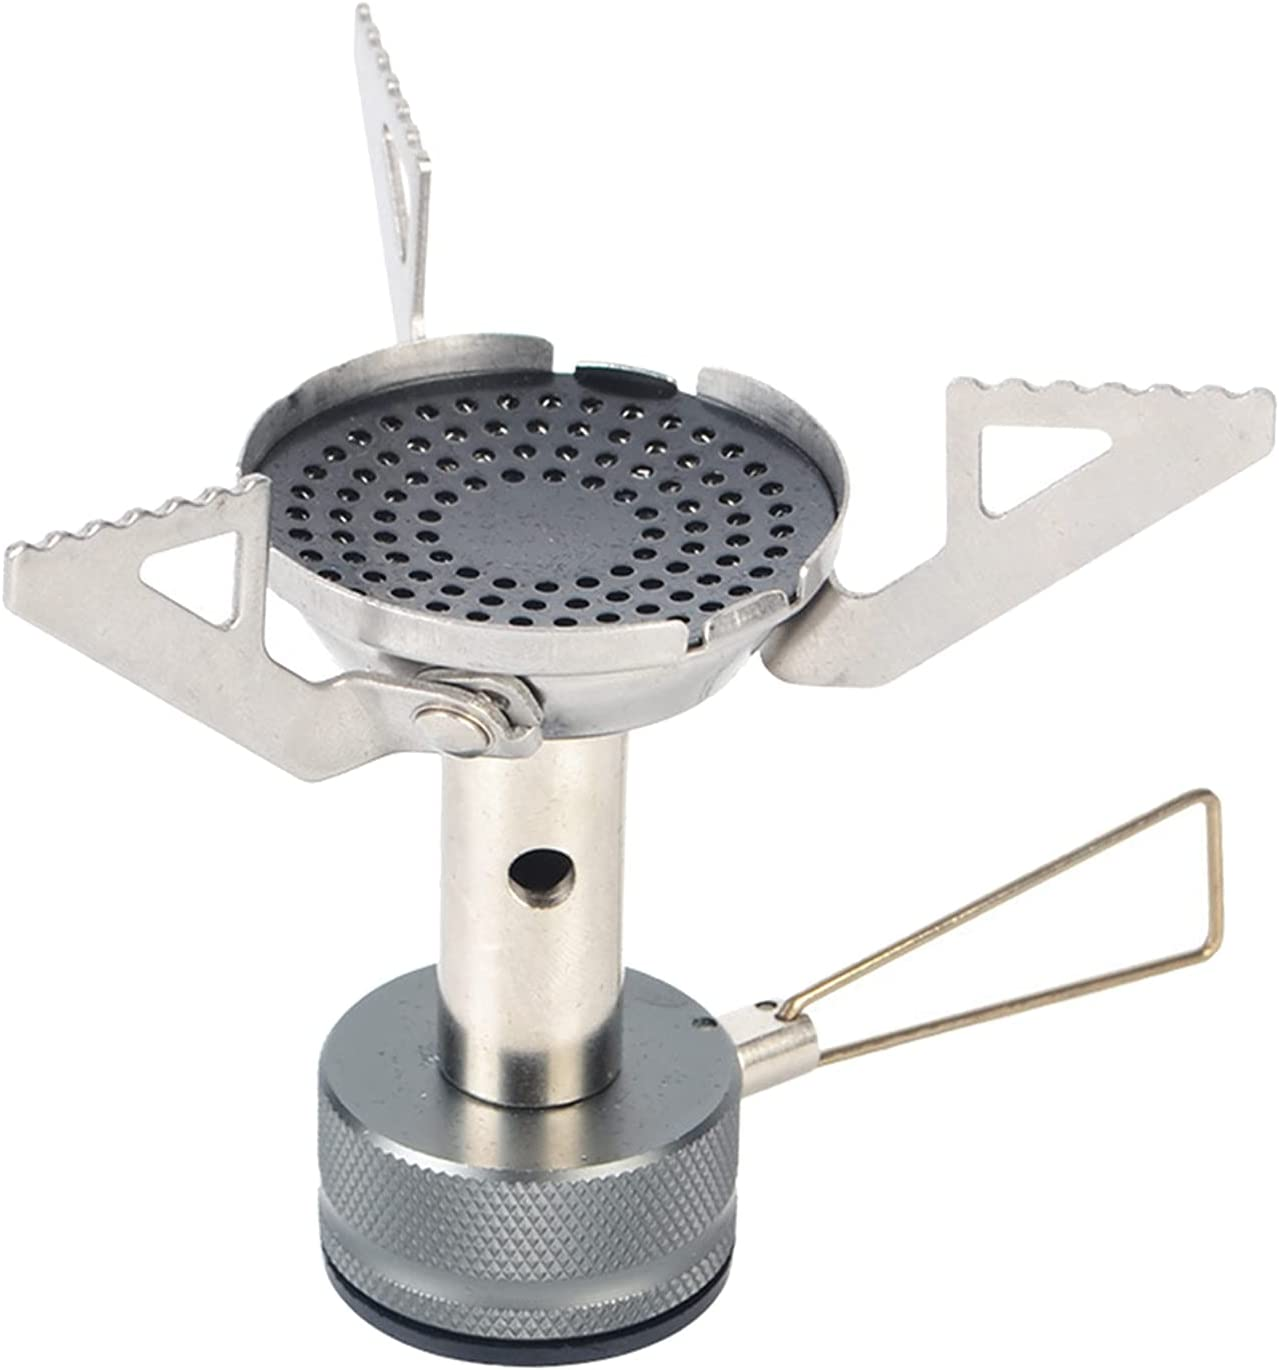 Colaxi Ultralight Folding Cooking Burner Campi Outdoor Mail Super intense SALE order cheap Gas Stove